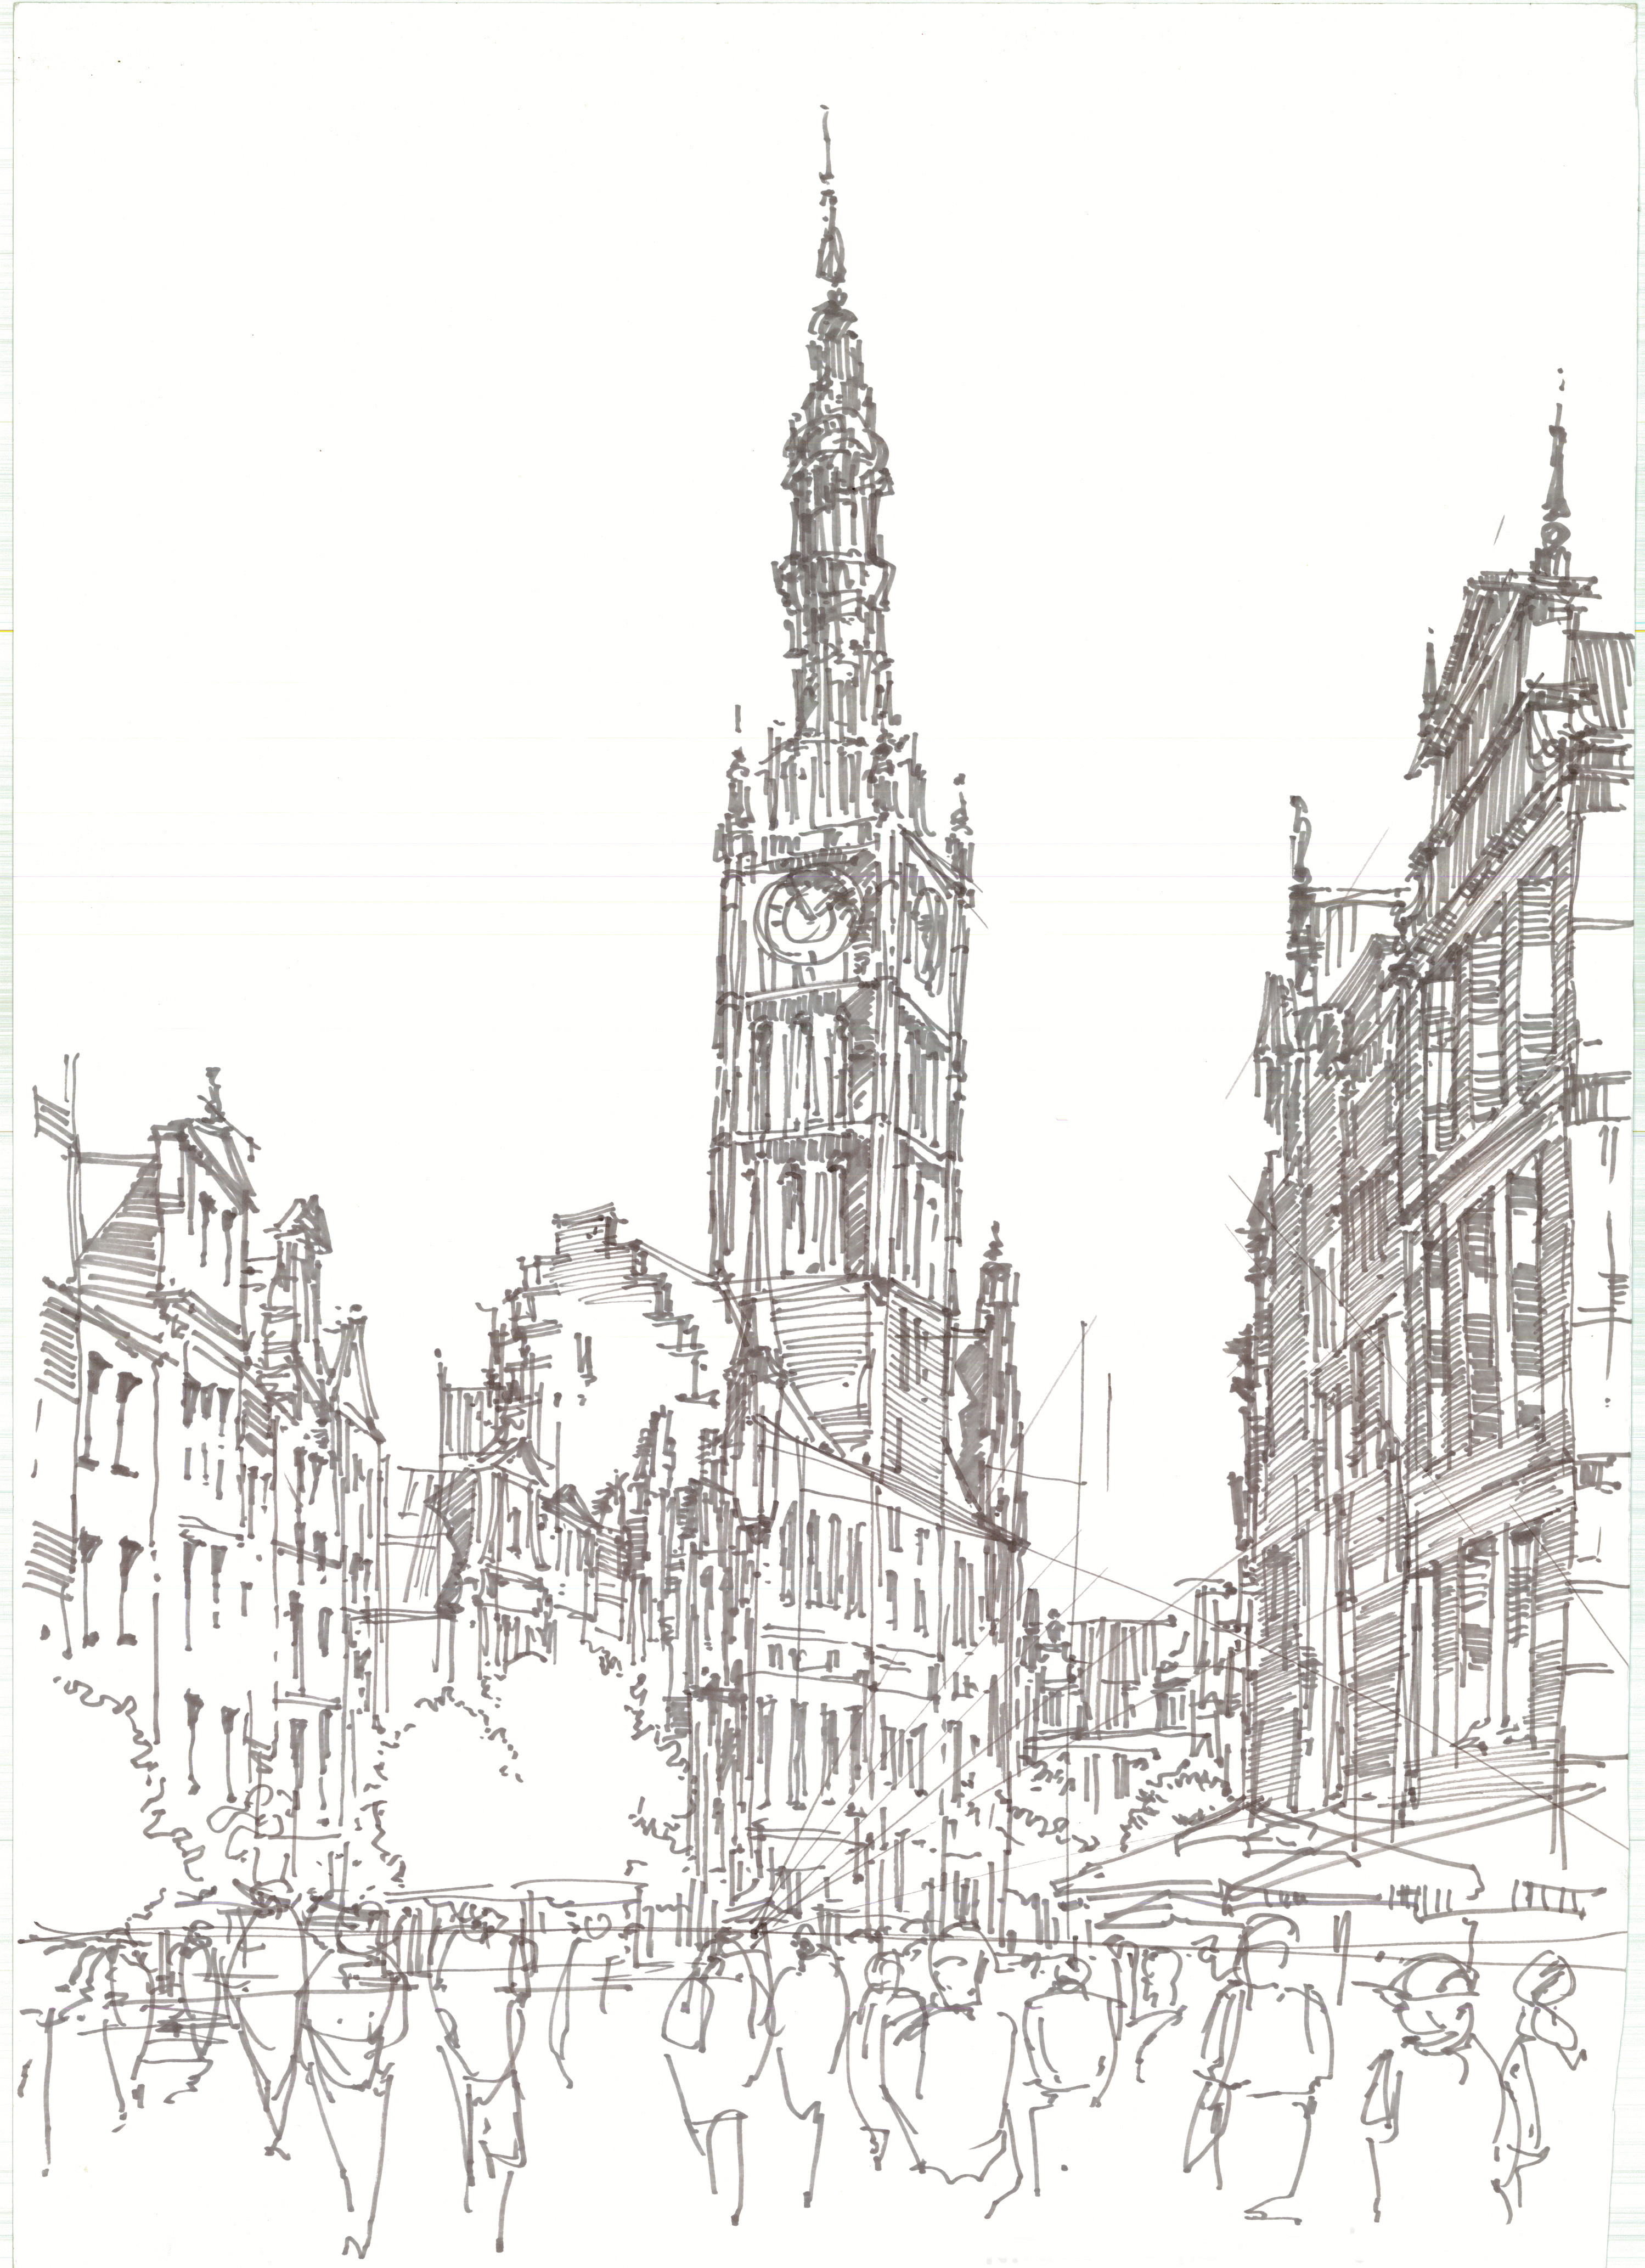 Gdańsk - Copic marker drawing 50x70cm (20x28in)